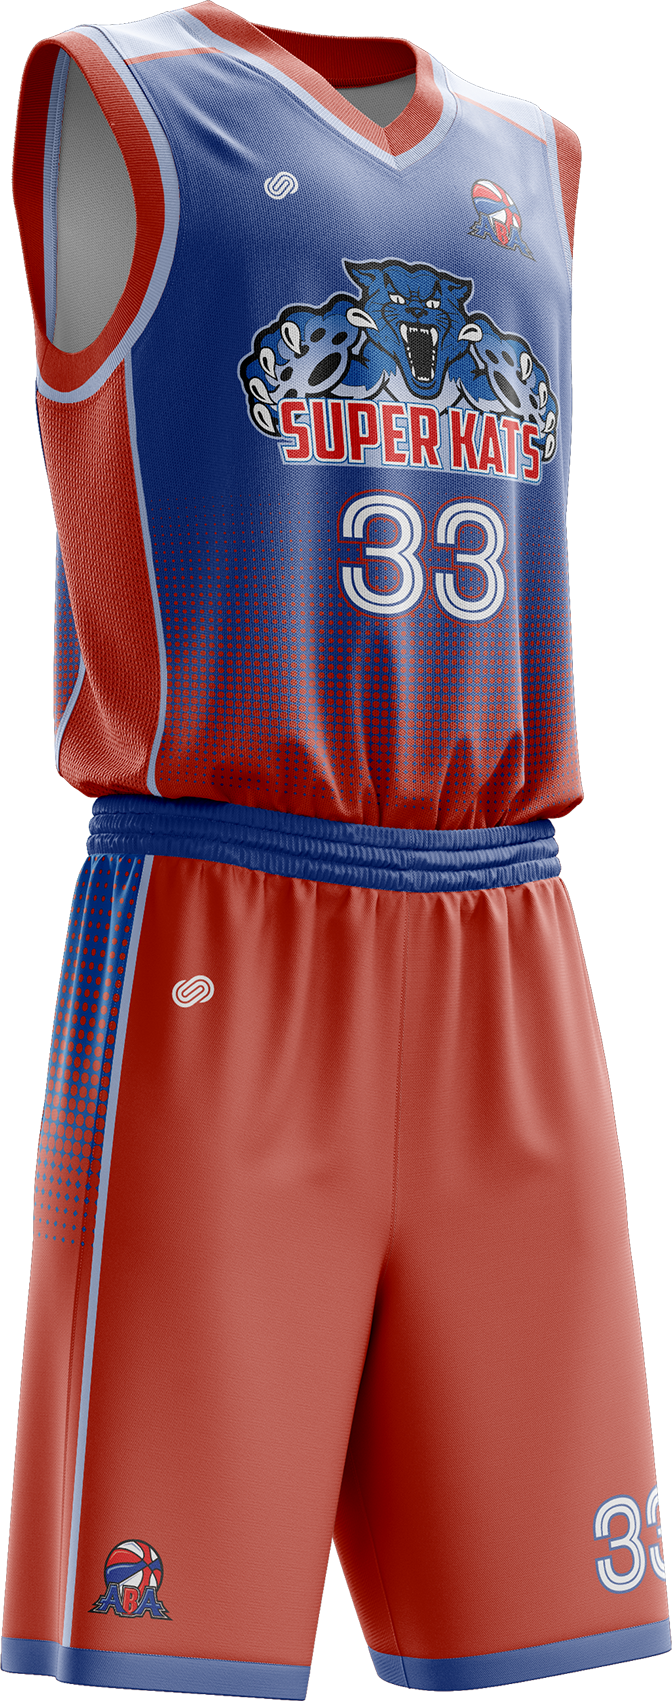 Sacramento Super Kats Home Uniform